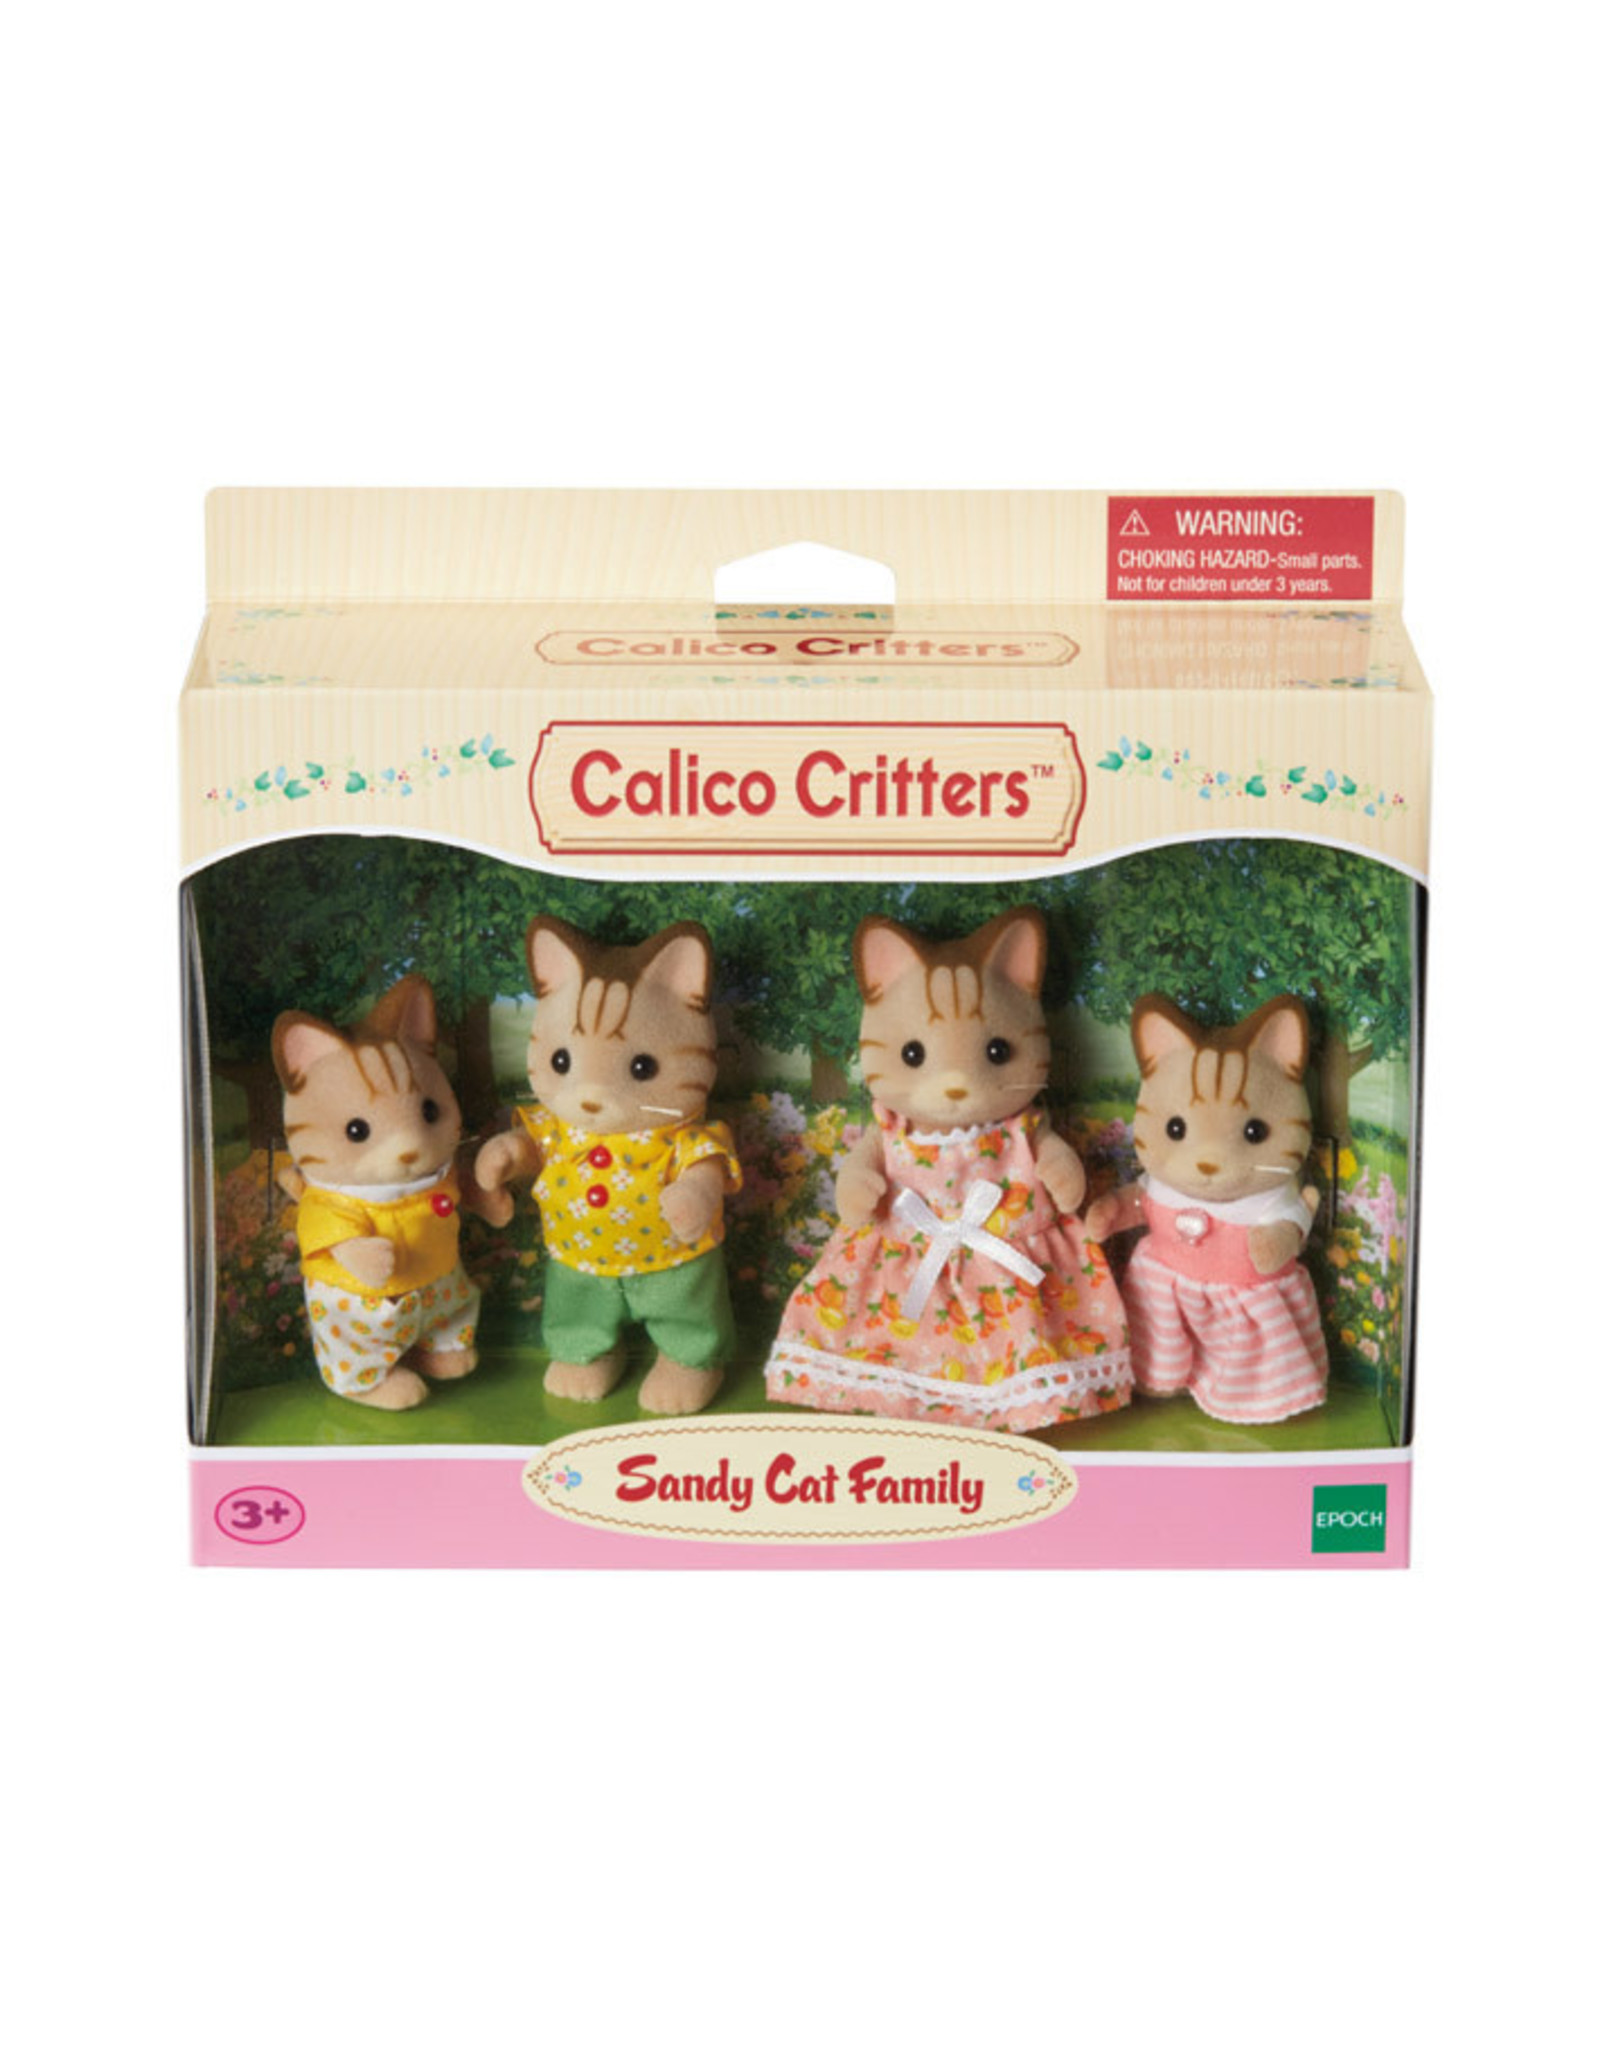 Calico Critters Calico Critters Sandy Cat Family